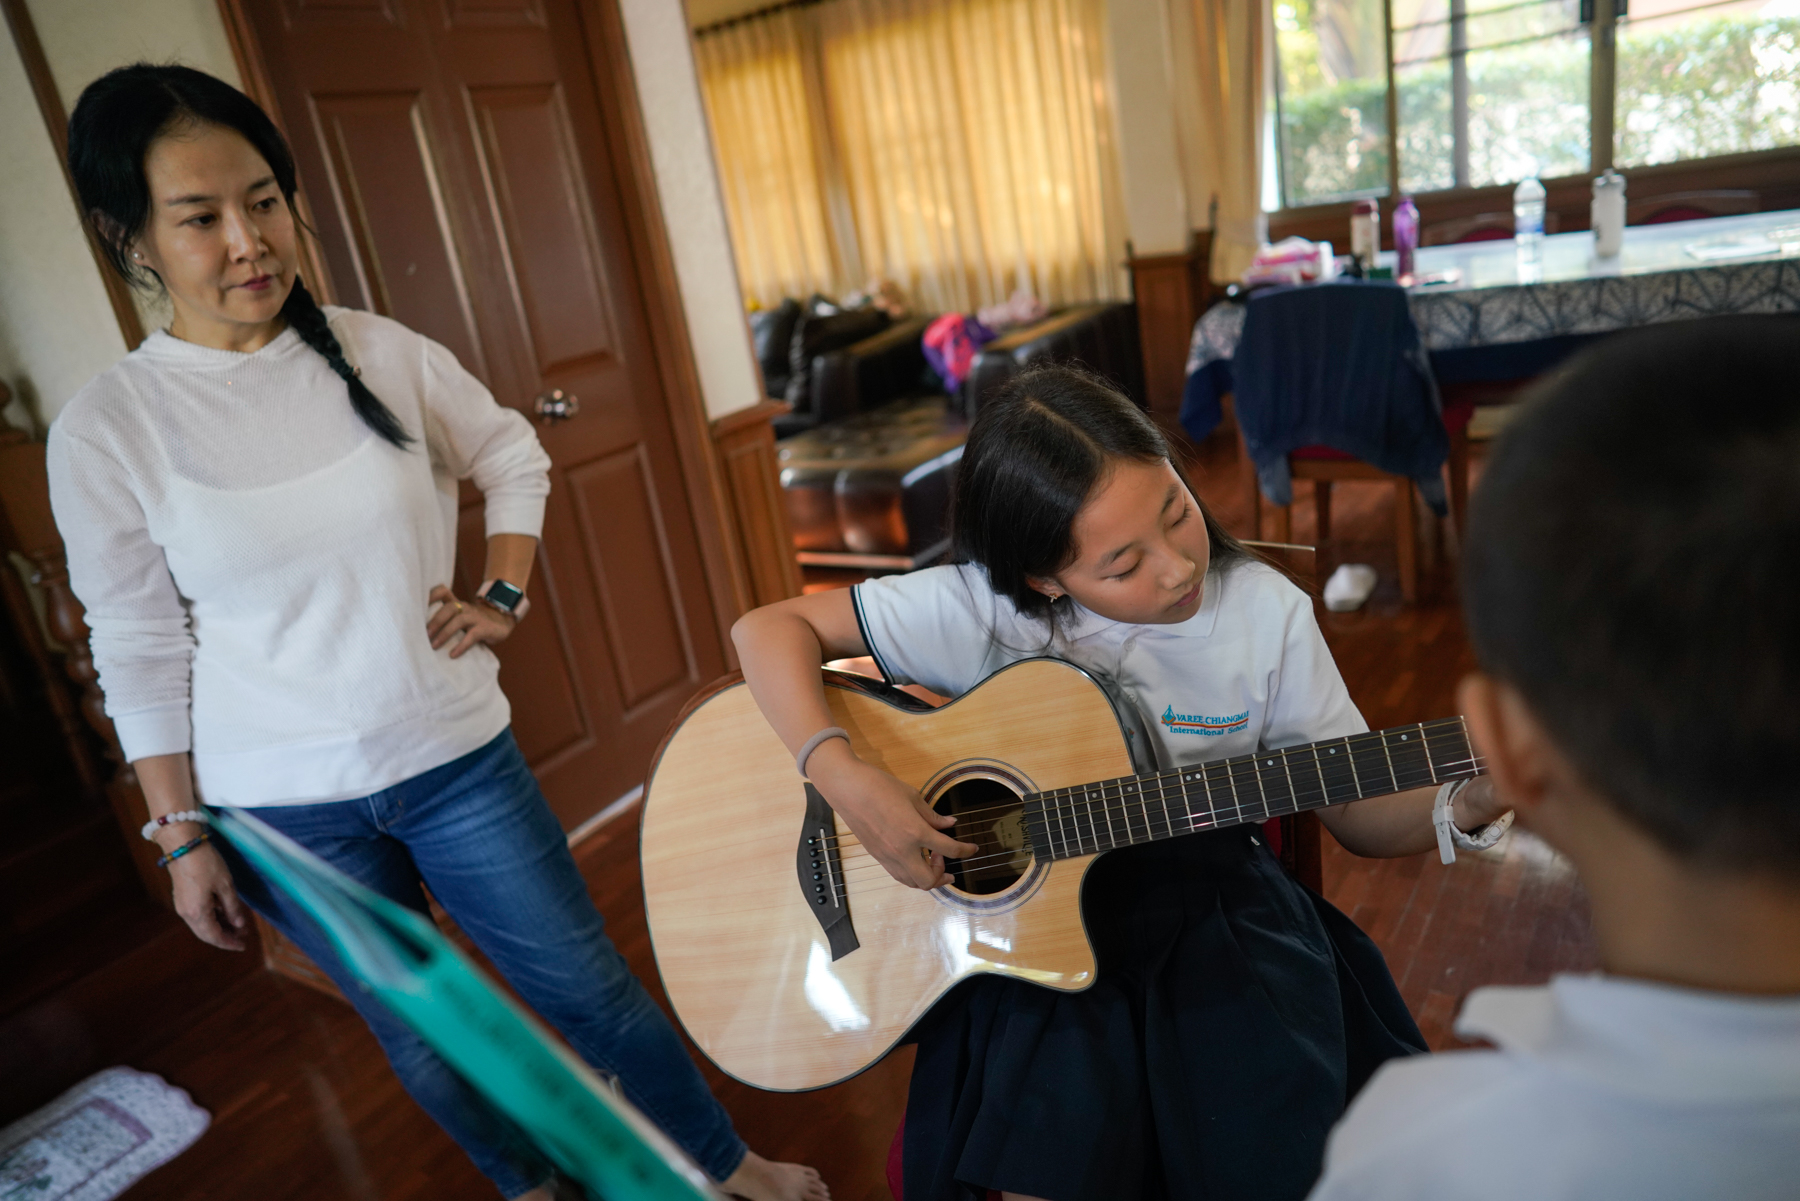 Wang Yixuan watches her eldest daughter, Nina, practice guitar at home, January 22, 2019.